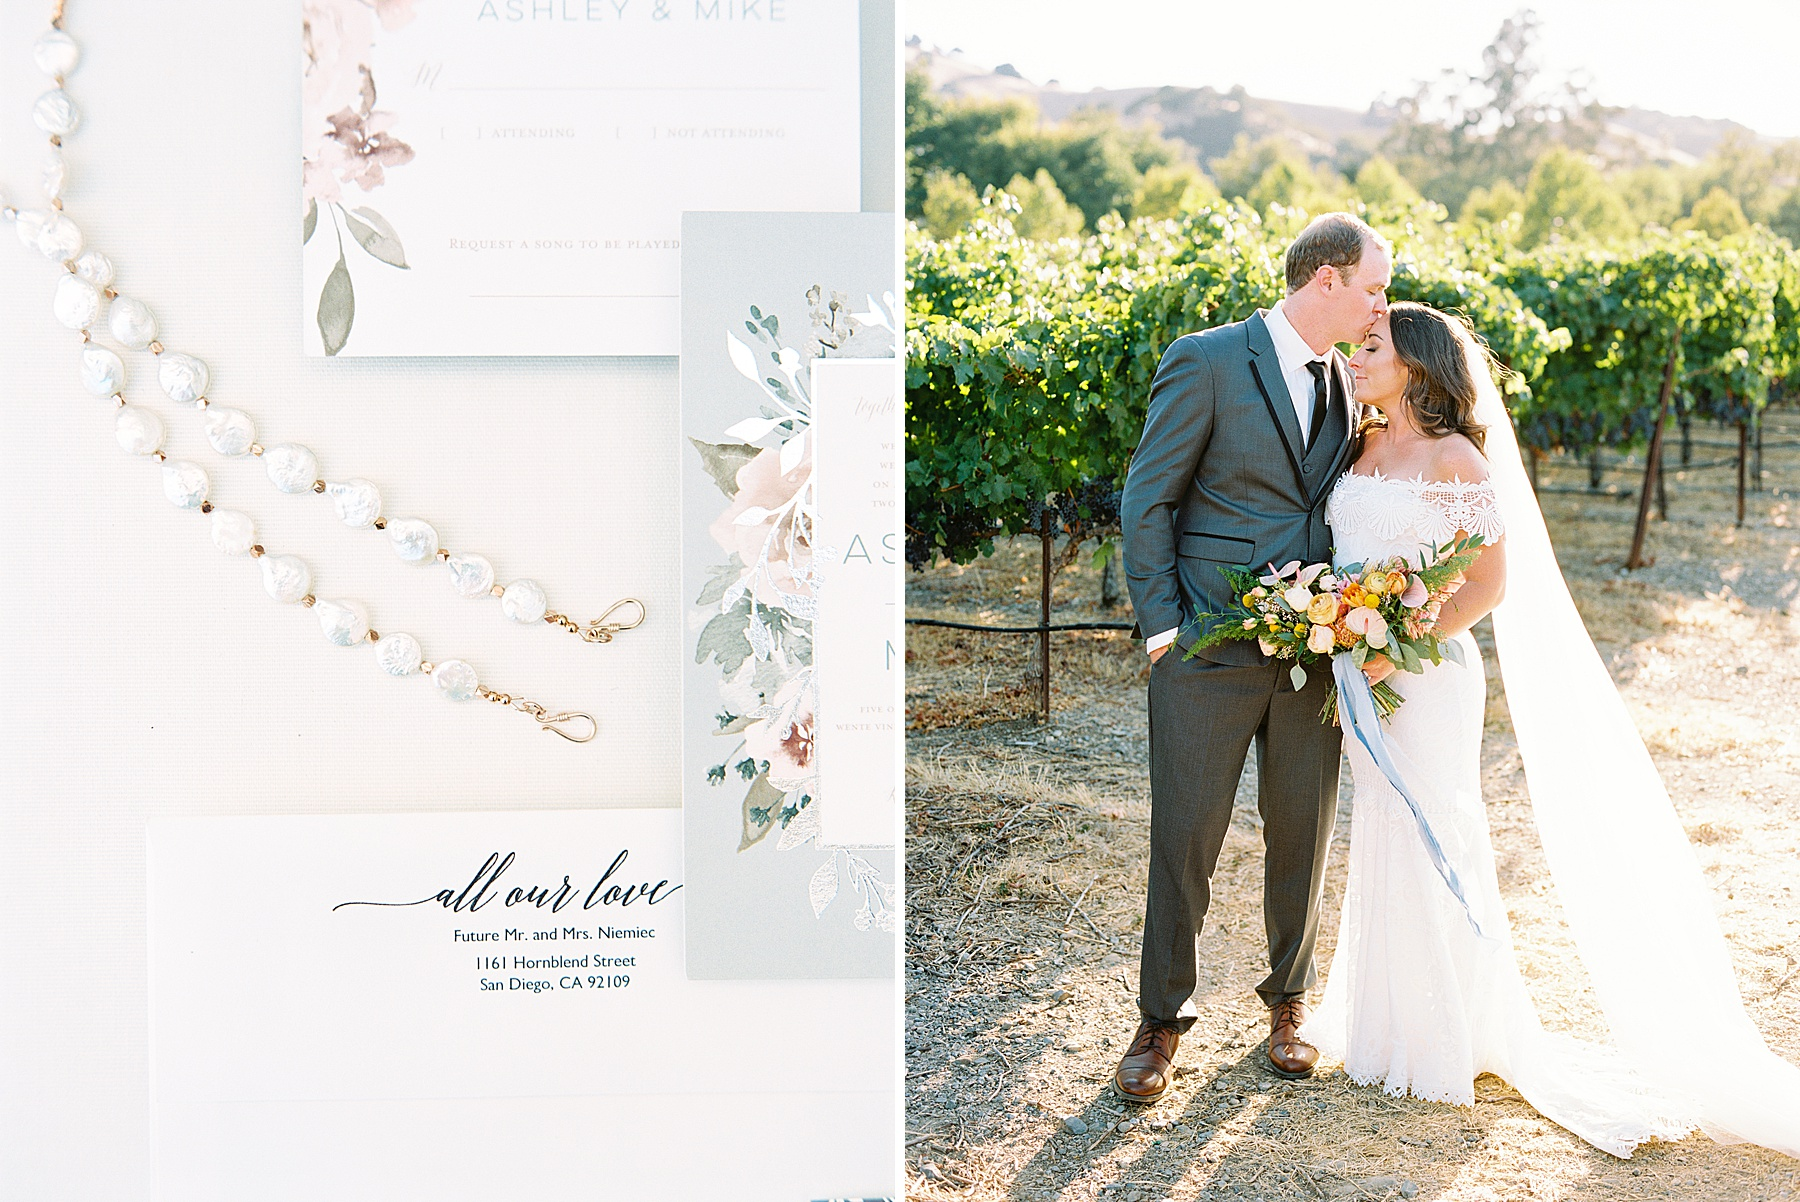 Wente Wedding with A Tropical Color Palette - Ashley & Mike - Featured on Inspired by This - Ashley Baumgartner_0033.jpg